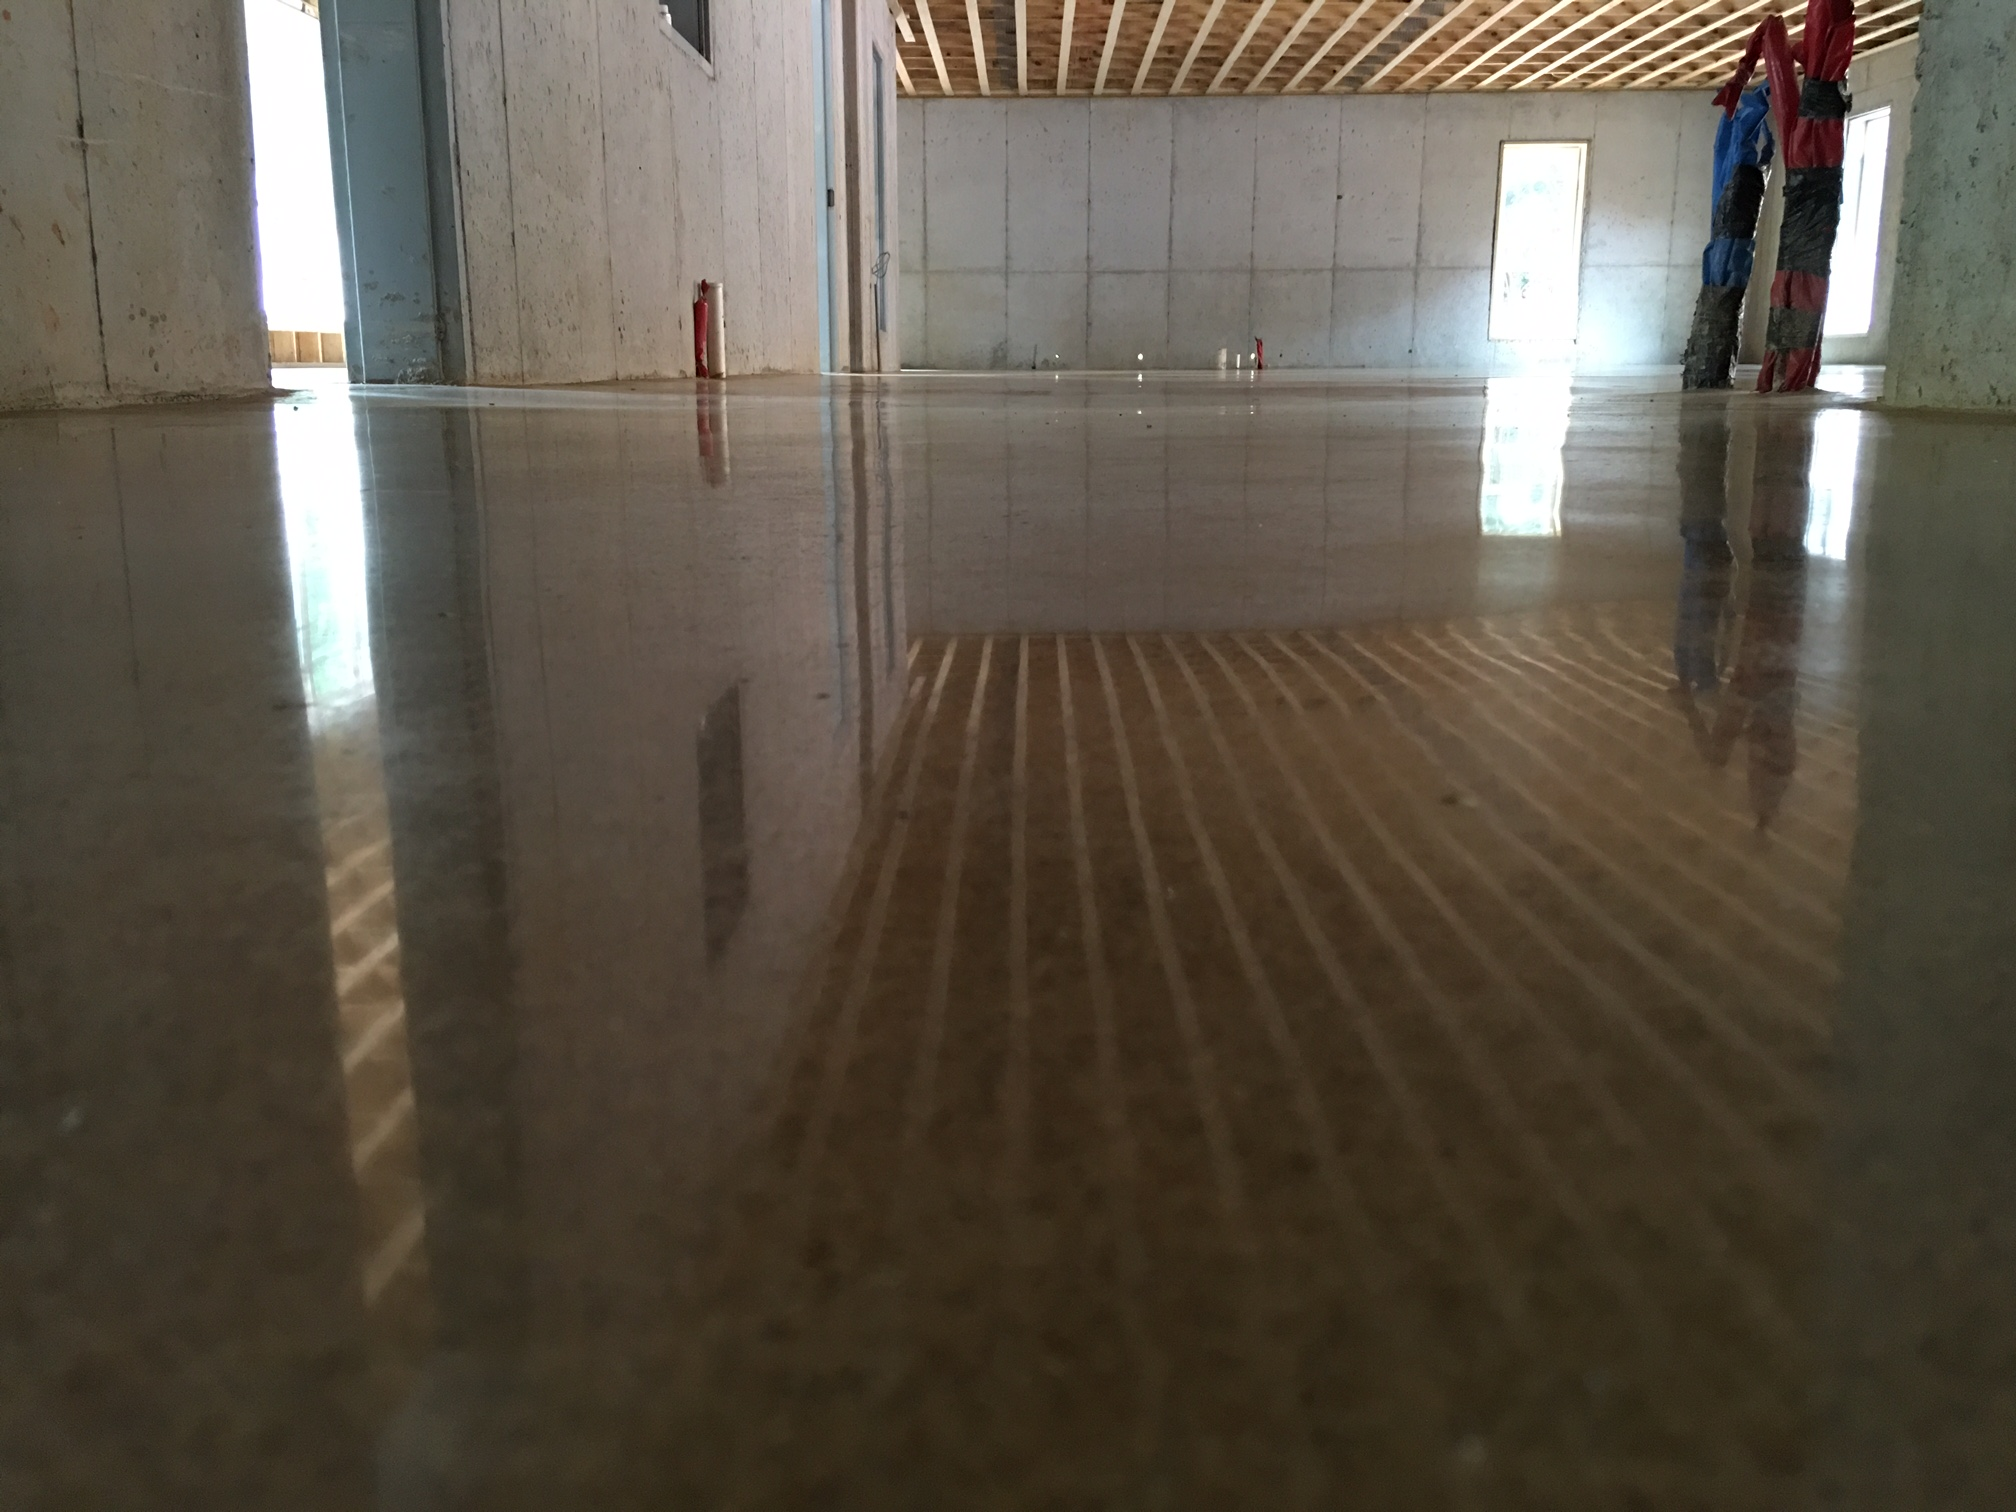 Sunlight Reflecting onto 3,000-Grit Polished Floor